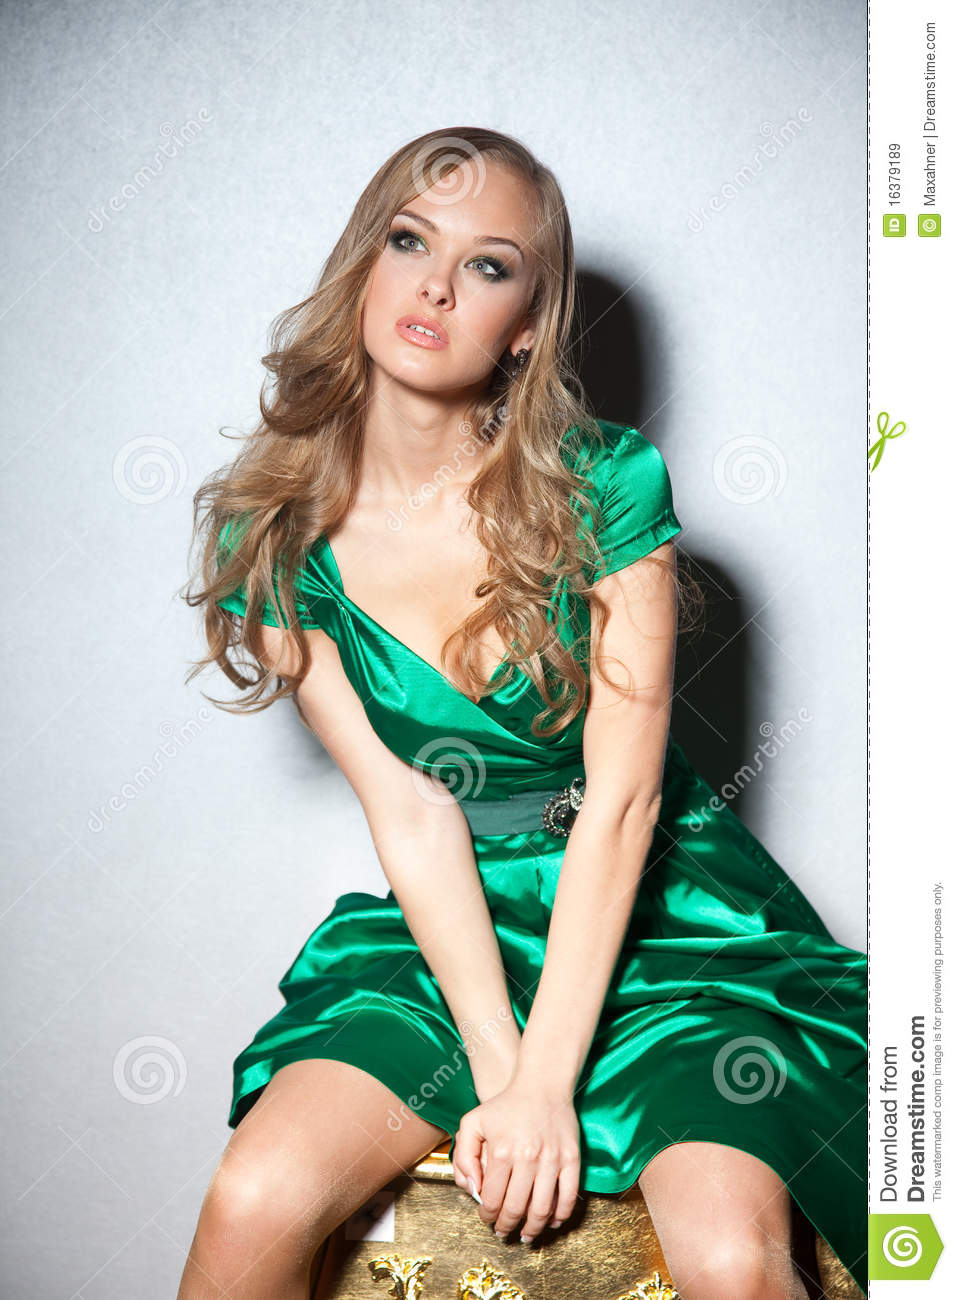 637db2161 Stylish Shot Of Girl In Green Dress Sitting Stock Image - Image of ...